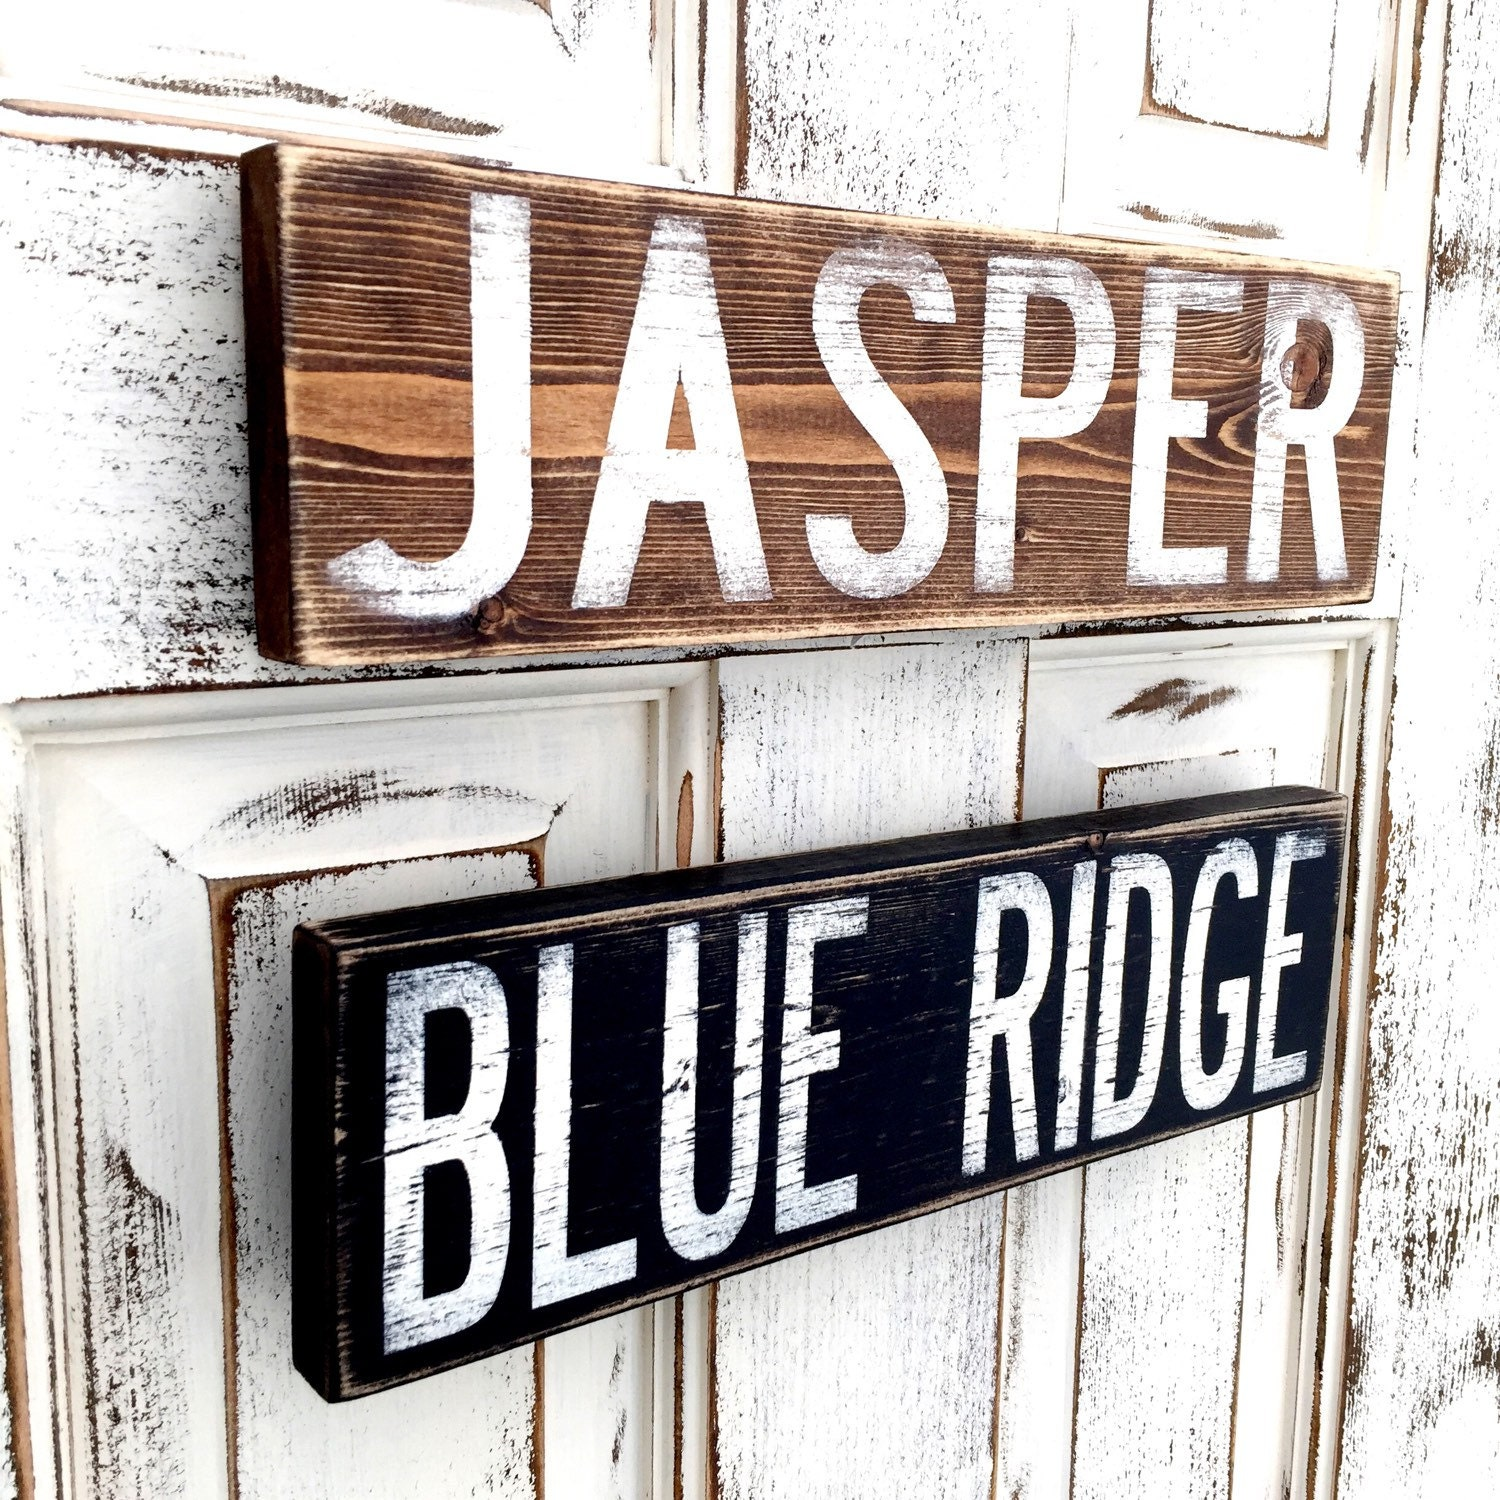 Painted Wood Word Sign Custom Wooden Sign City Hometown. December Zodiac Signs. Now Playing Signs. Overhydration Signs Of Stroke. Copper Signs Of Stroke. Shine Signs. Cerebellar Stroke Signs Of Stroke. Rales Arterial Signs. Cursive Signs Of Stroke